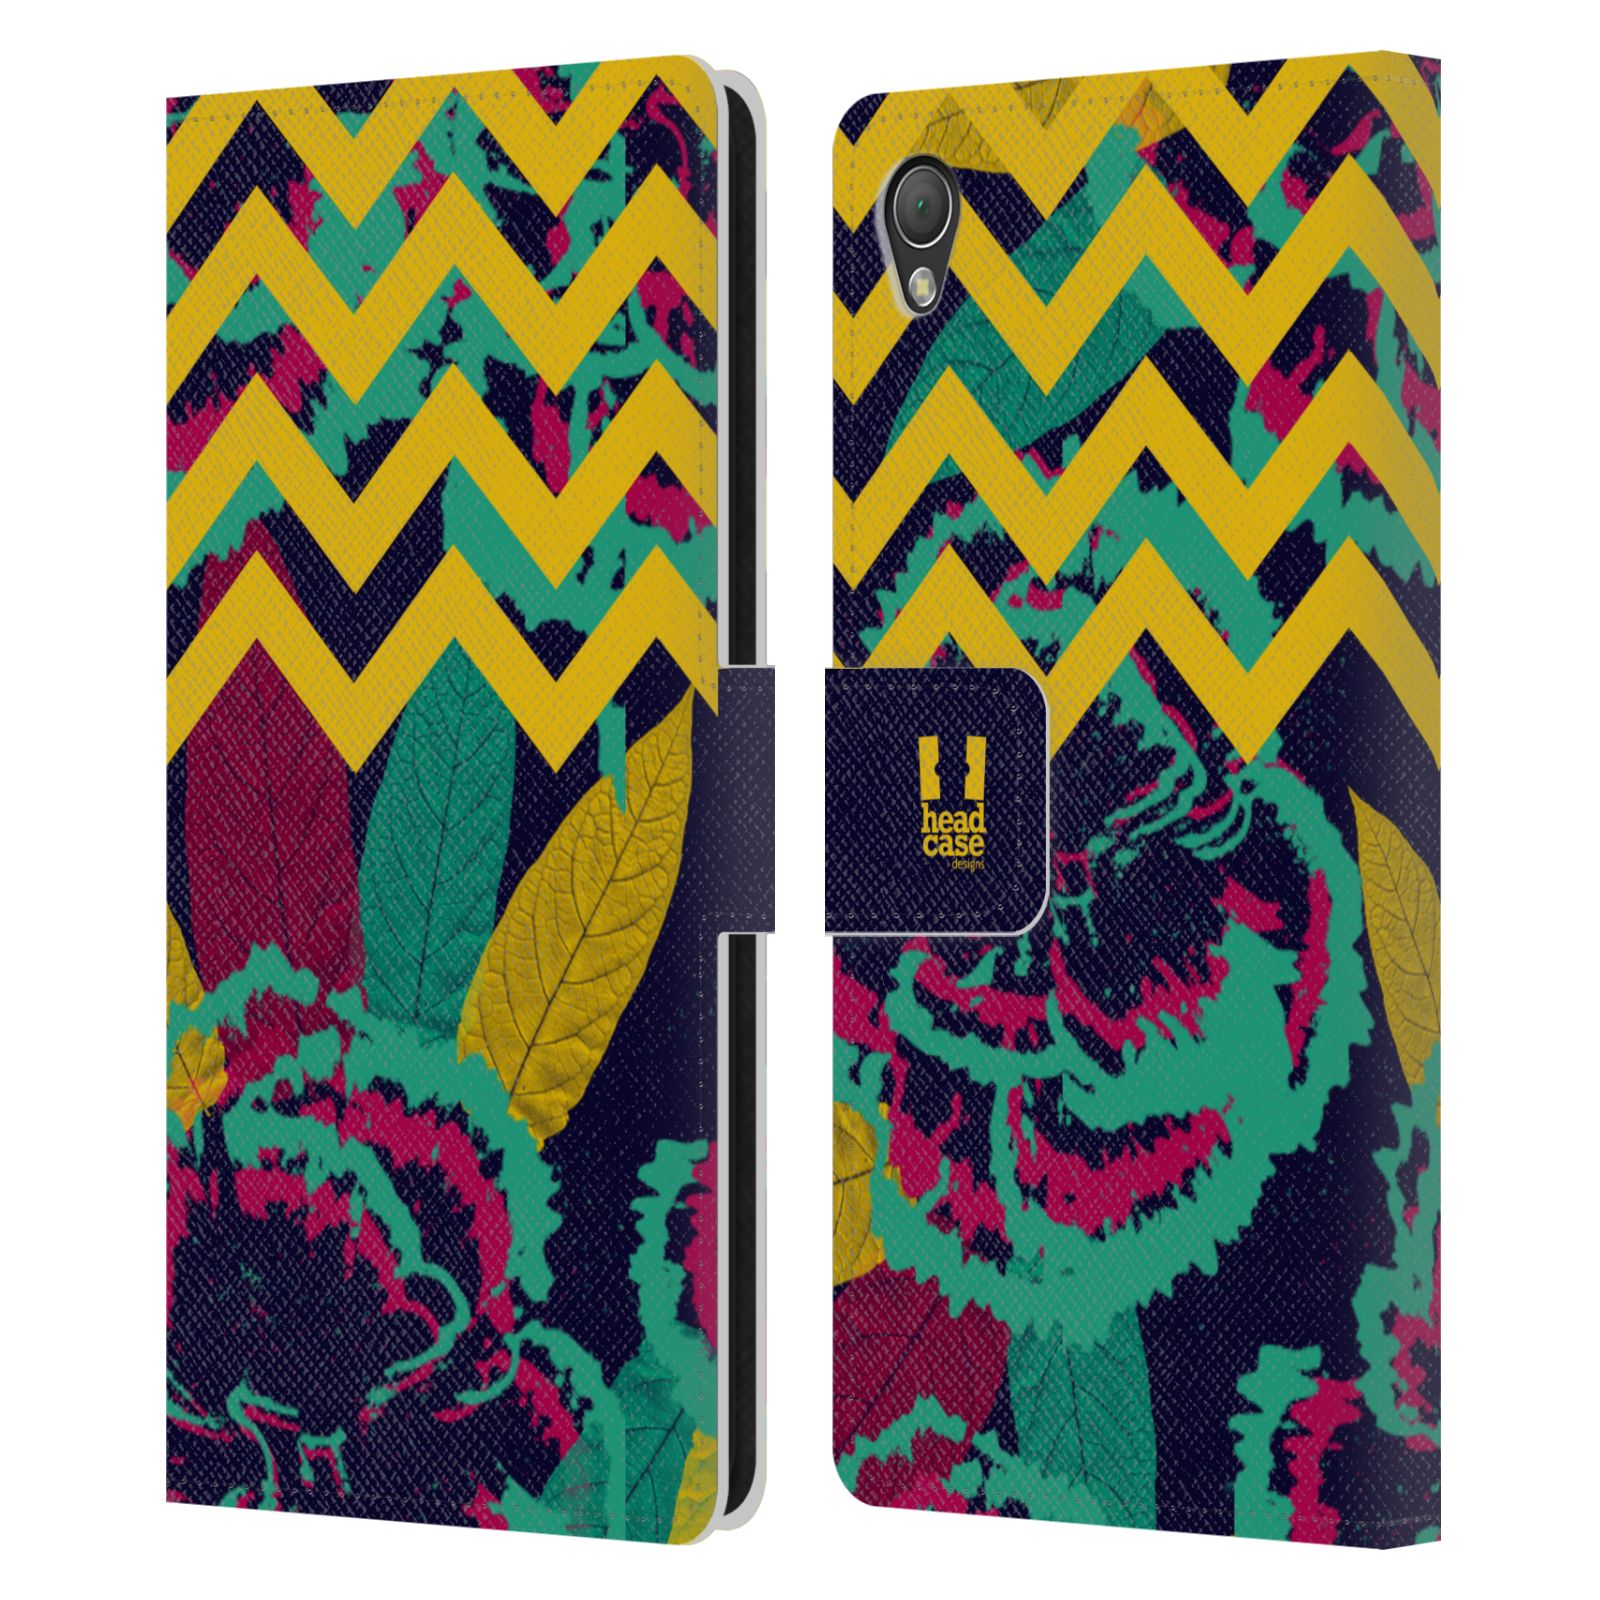 HEAD CASE DESIGNS TREND MIX LEATHER BOOK WALLET CASE COVER FOR SONY PHONES 1